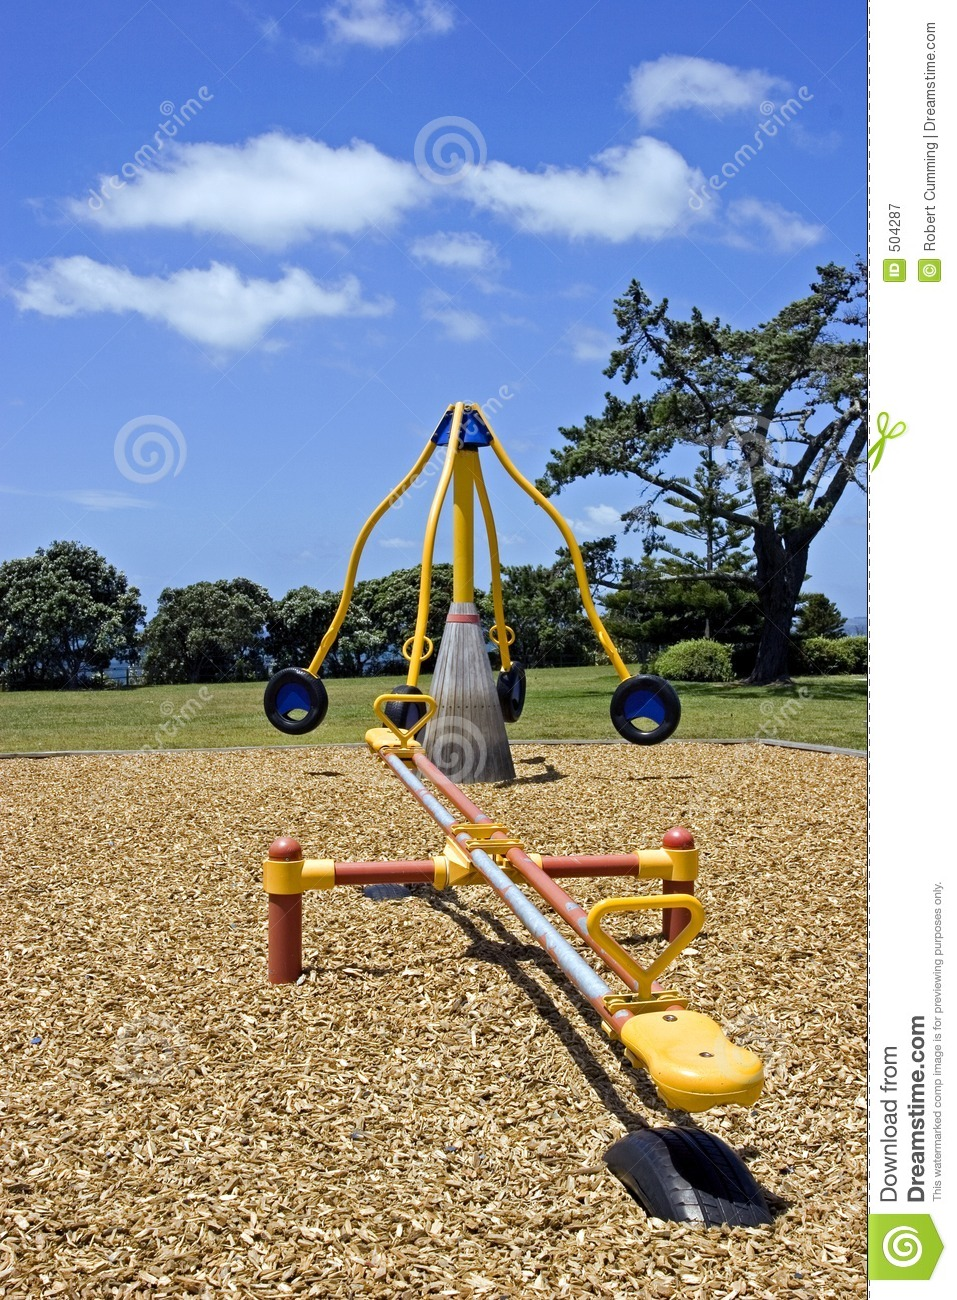 Playground Royalty Free Stock Photography - Image: 504287